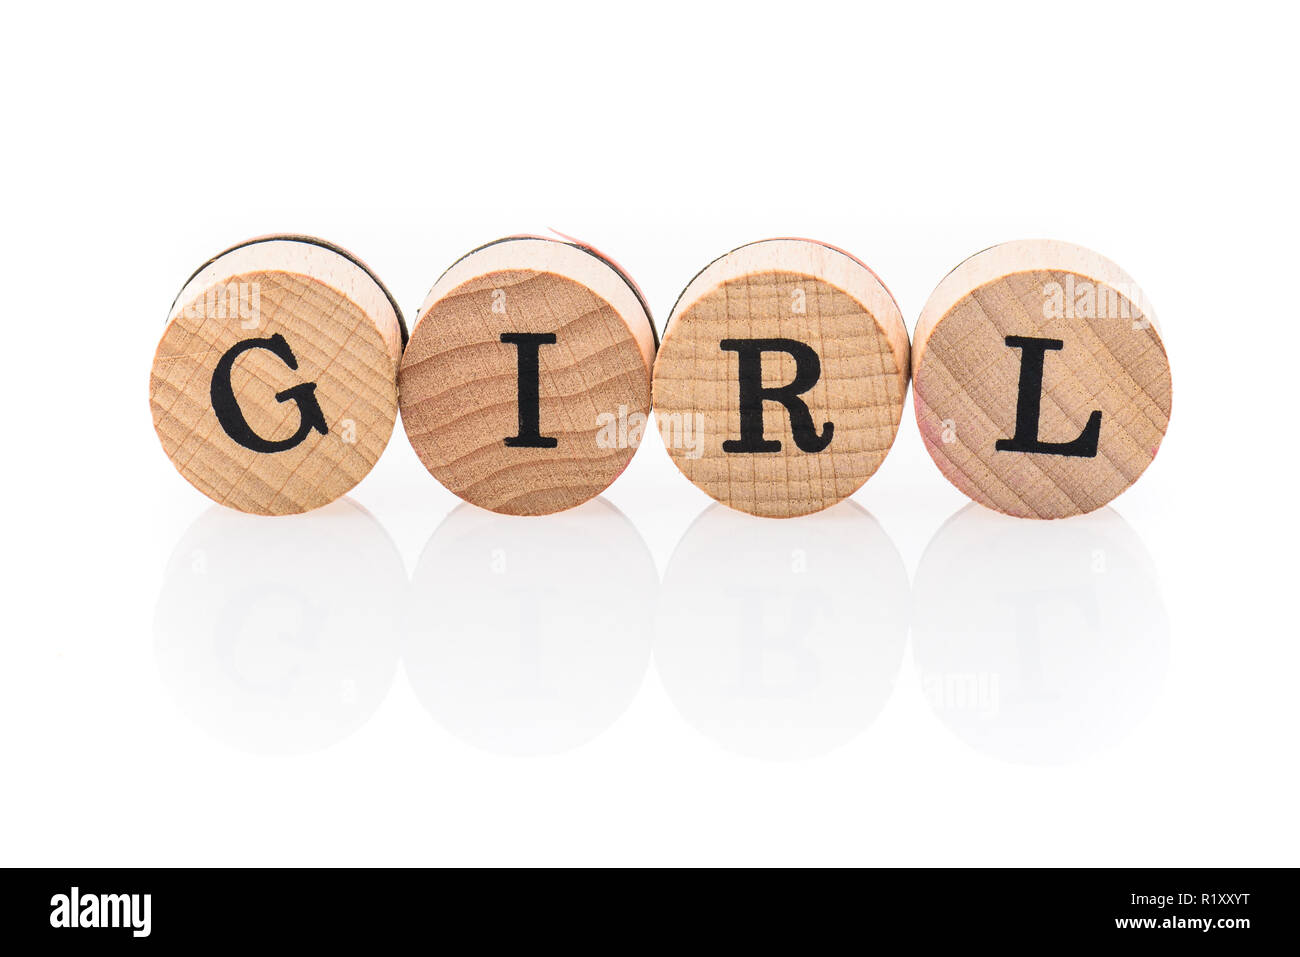 Word Girls from circular wooden tiles with letters children toy. Concept of family spelled in children toy letters. - Stock Image